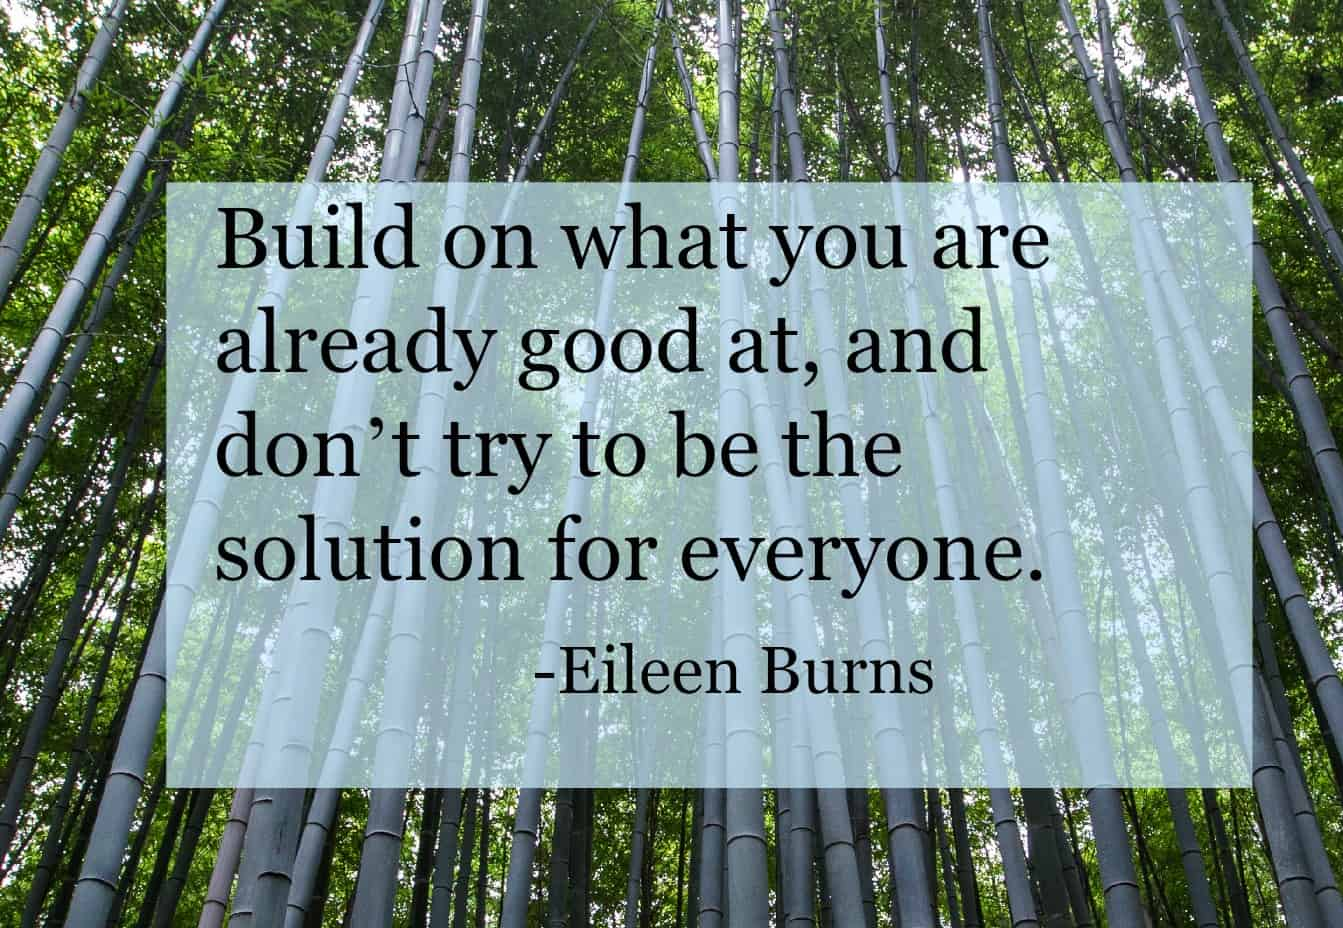 Build on what you are already good at, and don't try to be the solution to everyone. Eileen Burn stress coach. Click through to read full interview.